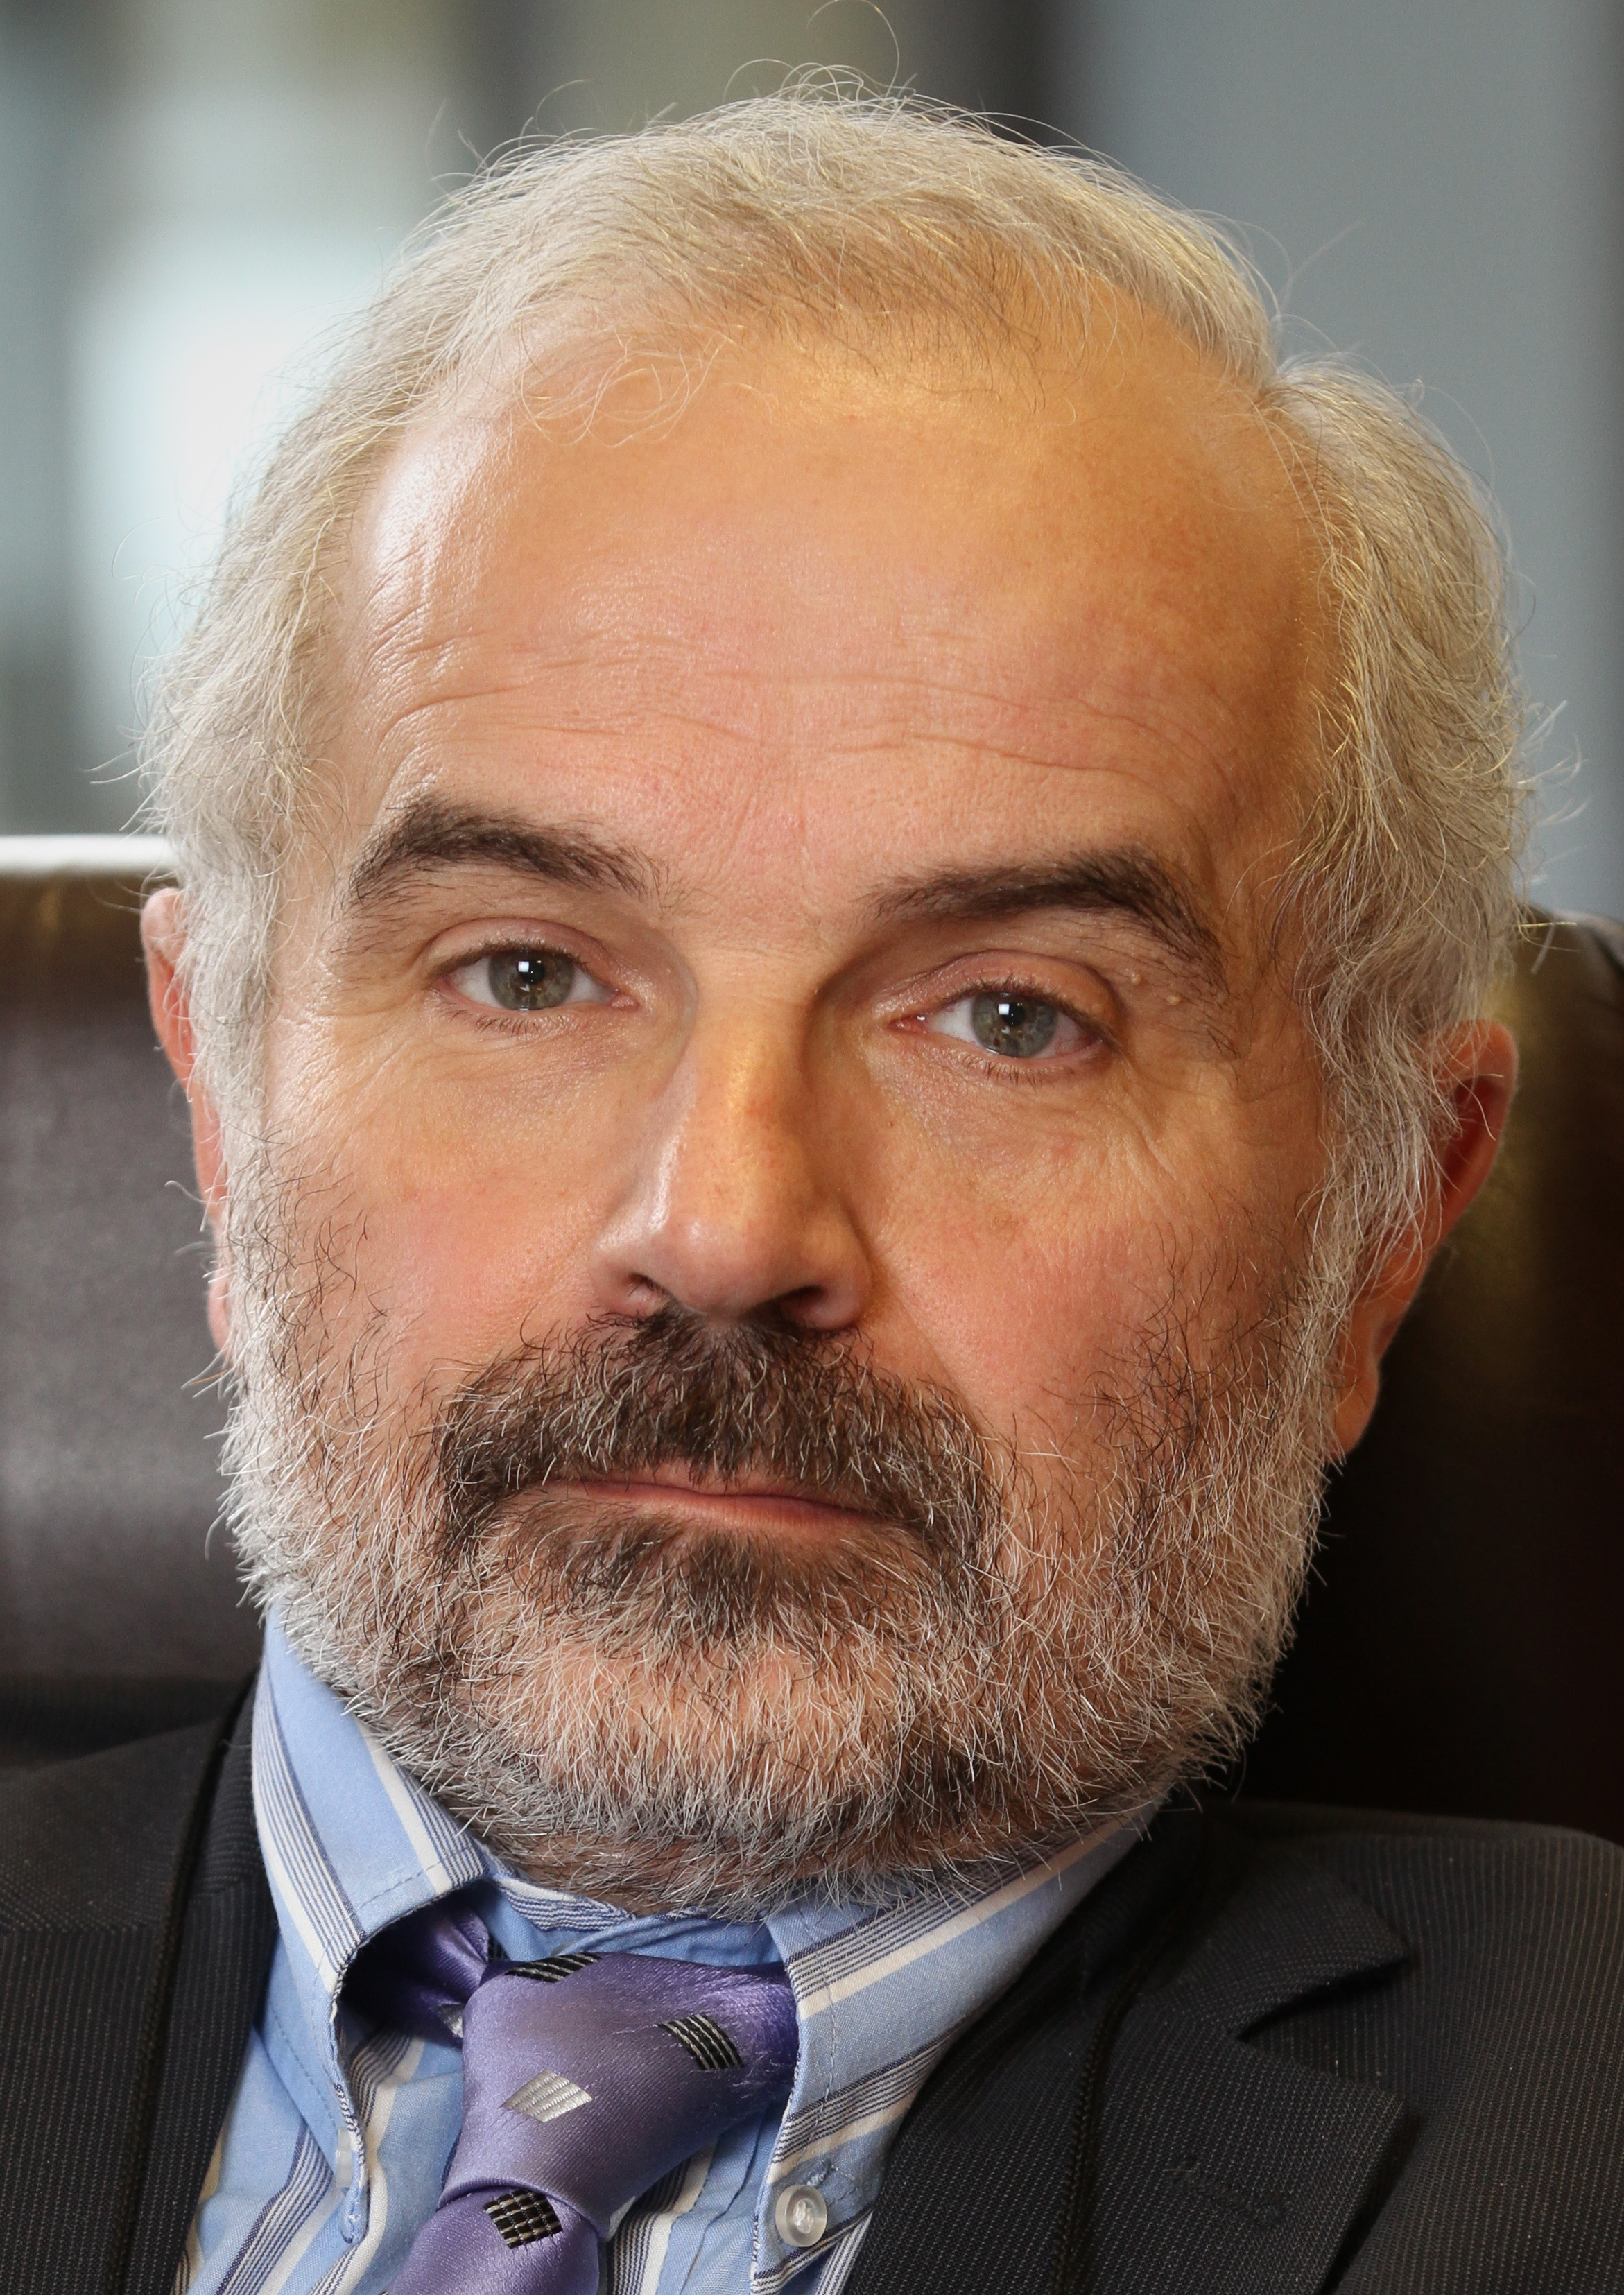 Photo of Dr. Jean-Yves Py, M.D.